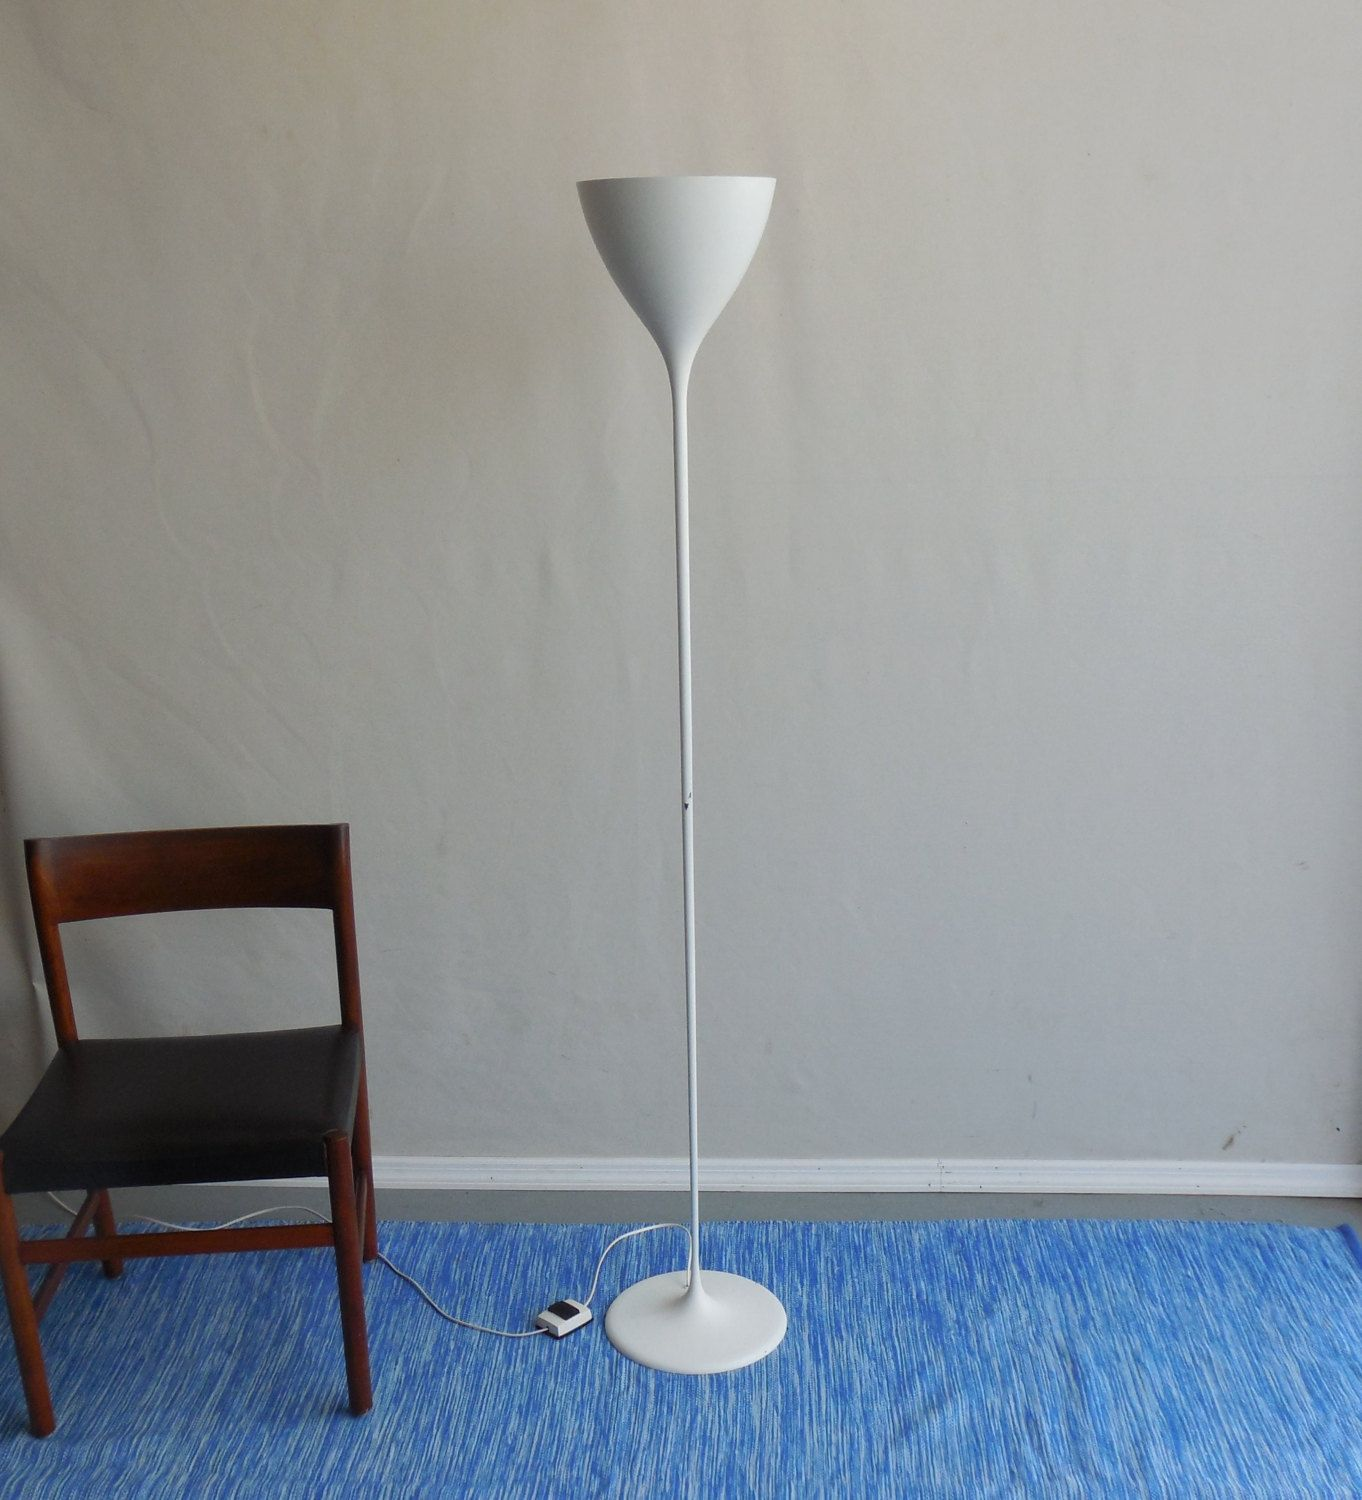 Reserved for bryce 328 1960s switzerland george kovacs 1960s switzerland george kovacs white tulip floor lamp max bill ernst luthiger by dadarama on aloadofball Image collections